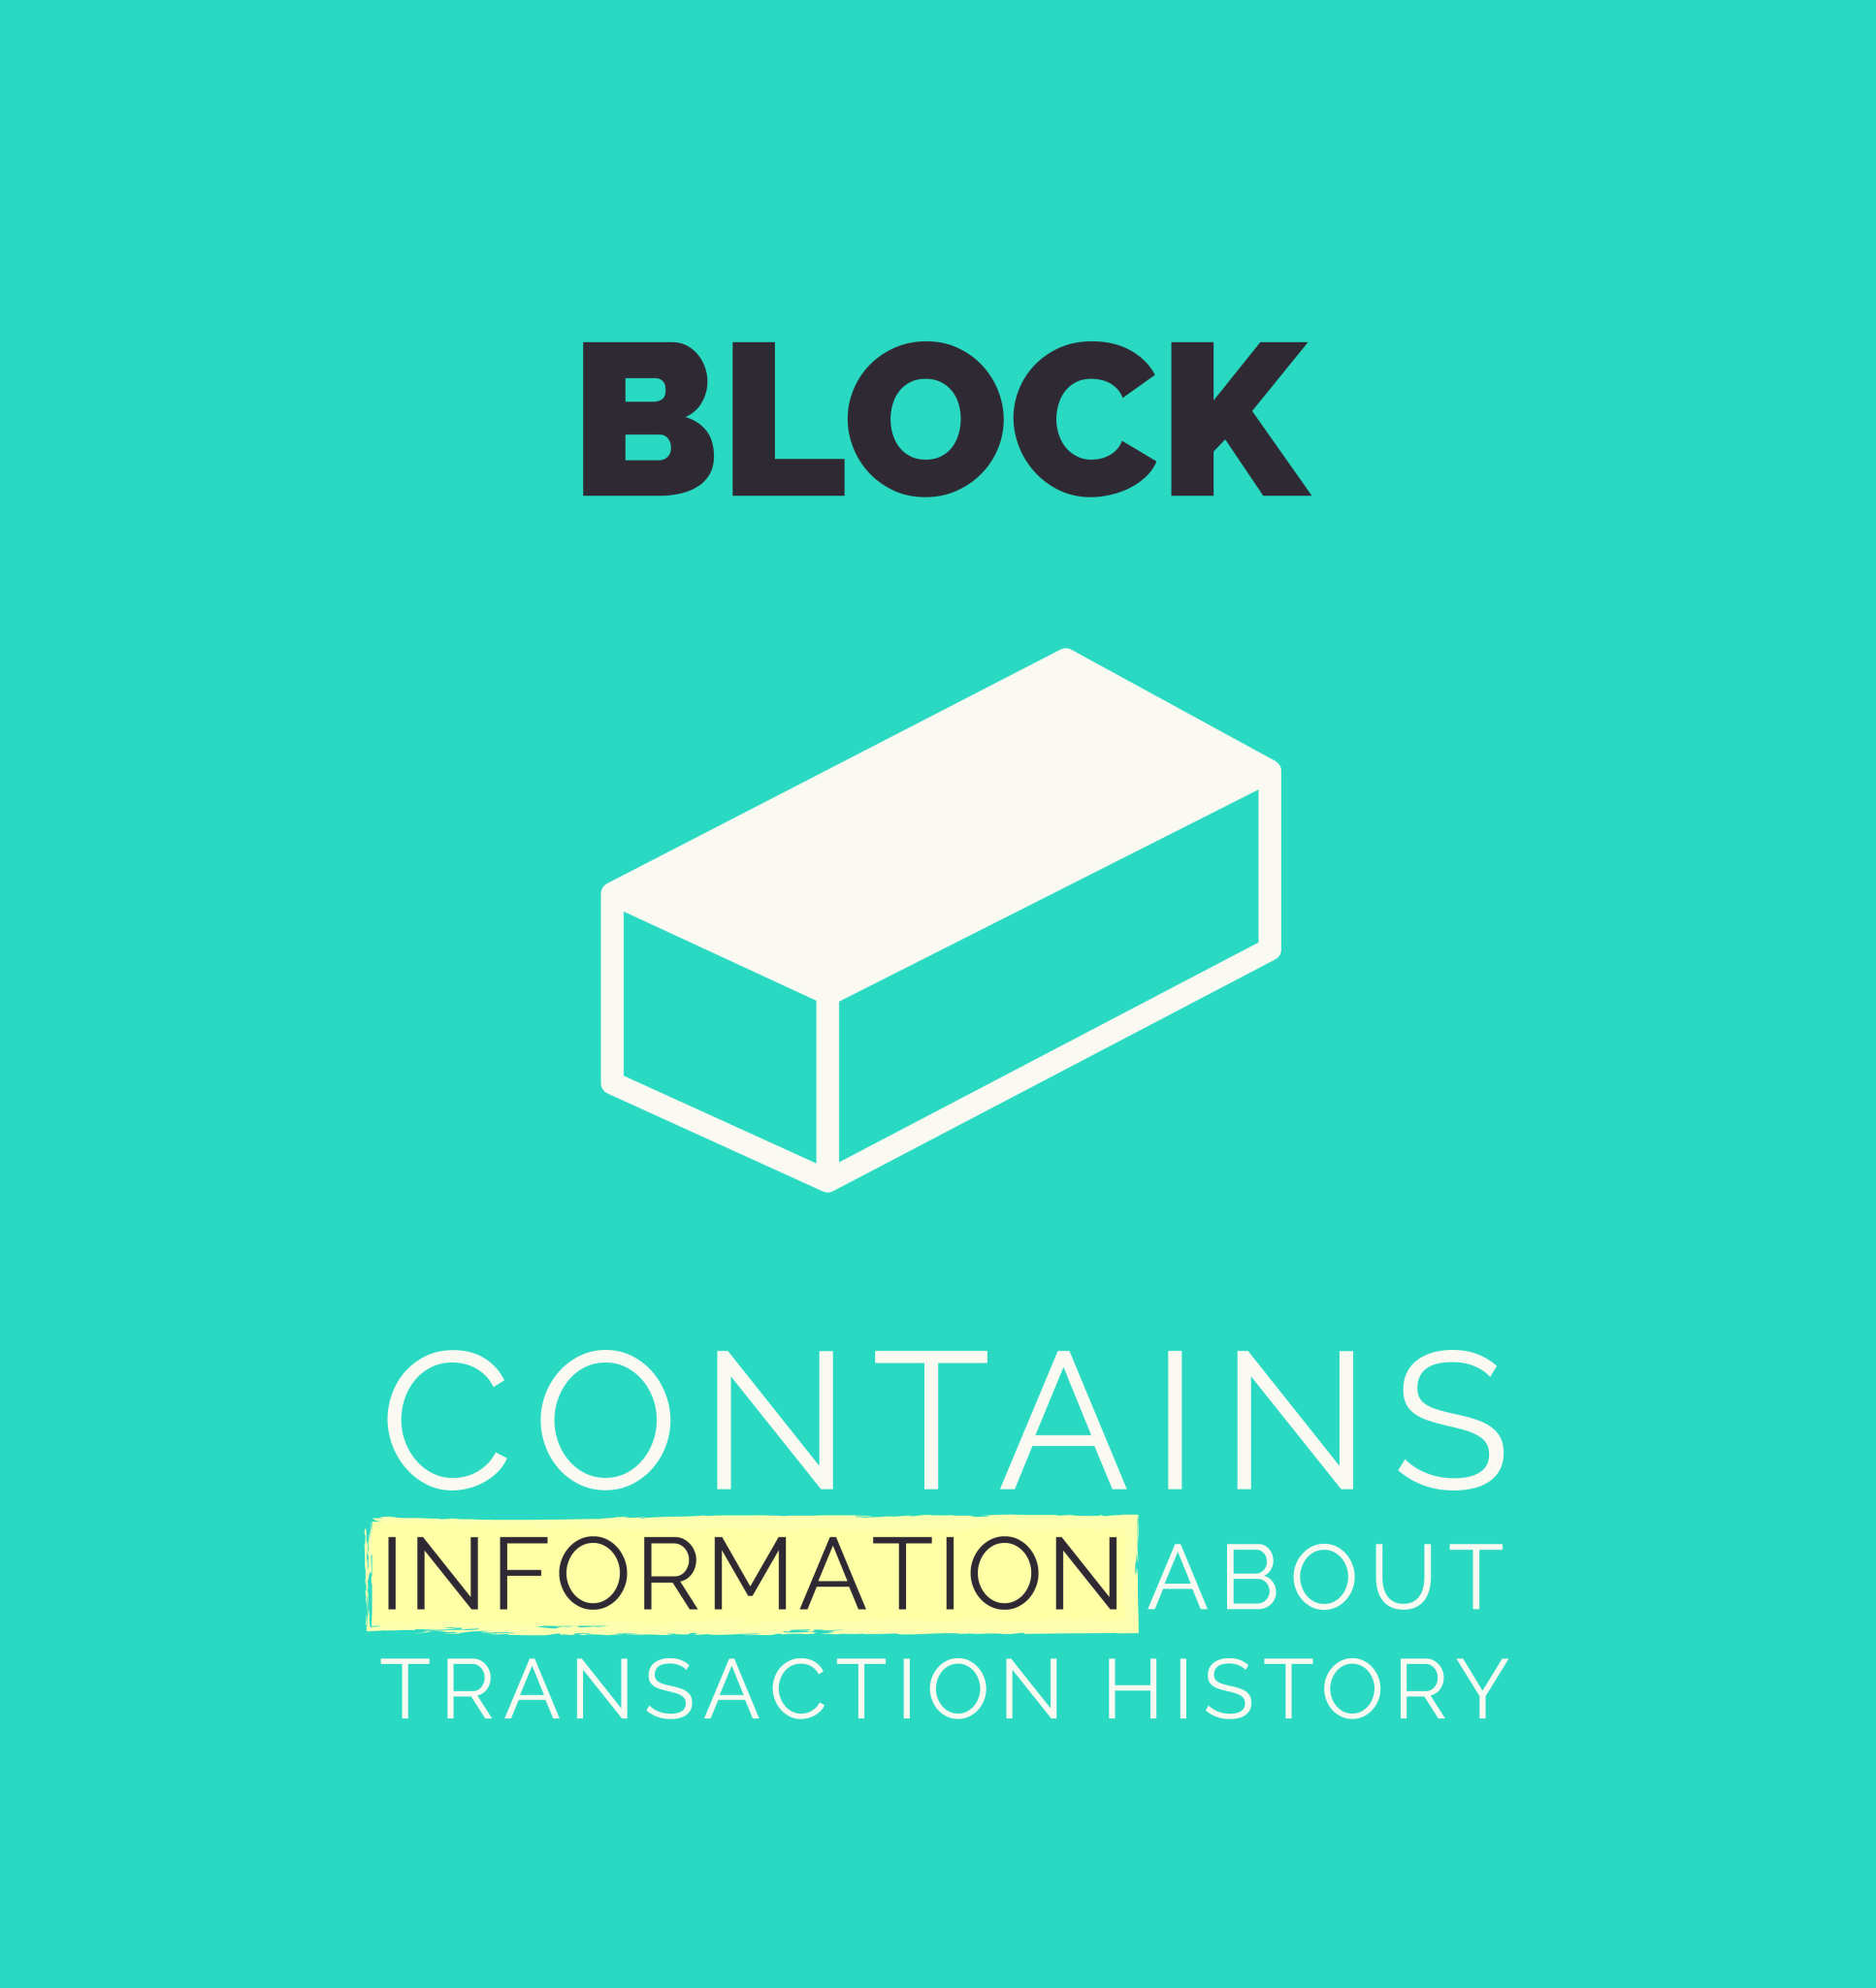 Illustration caption: Block contains information about transaction history